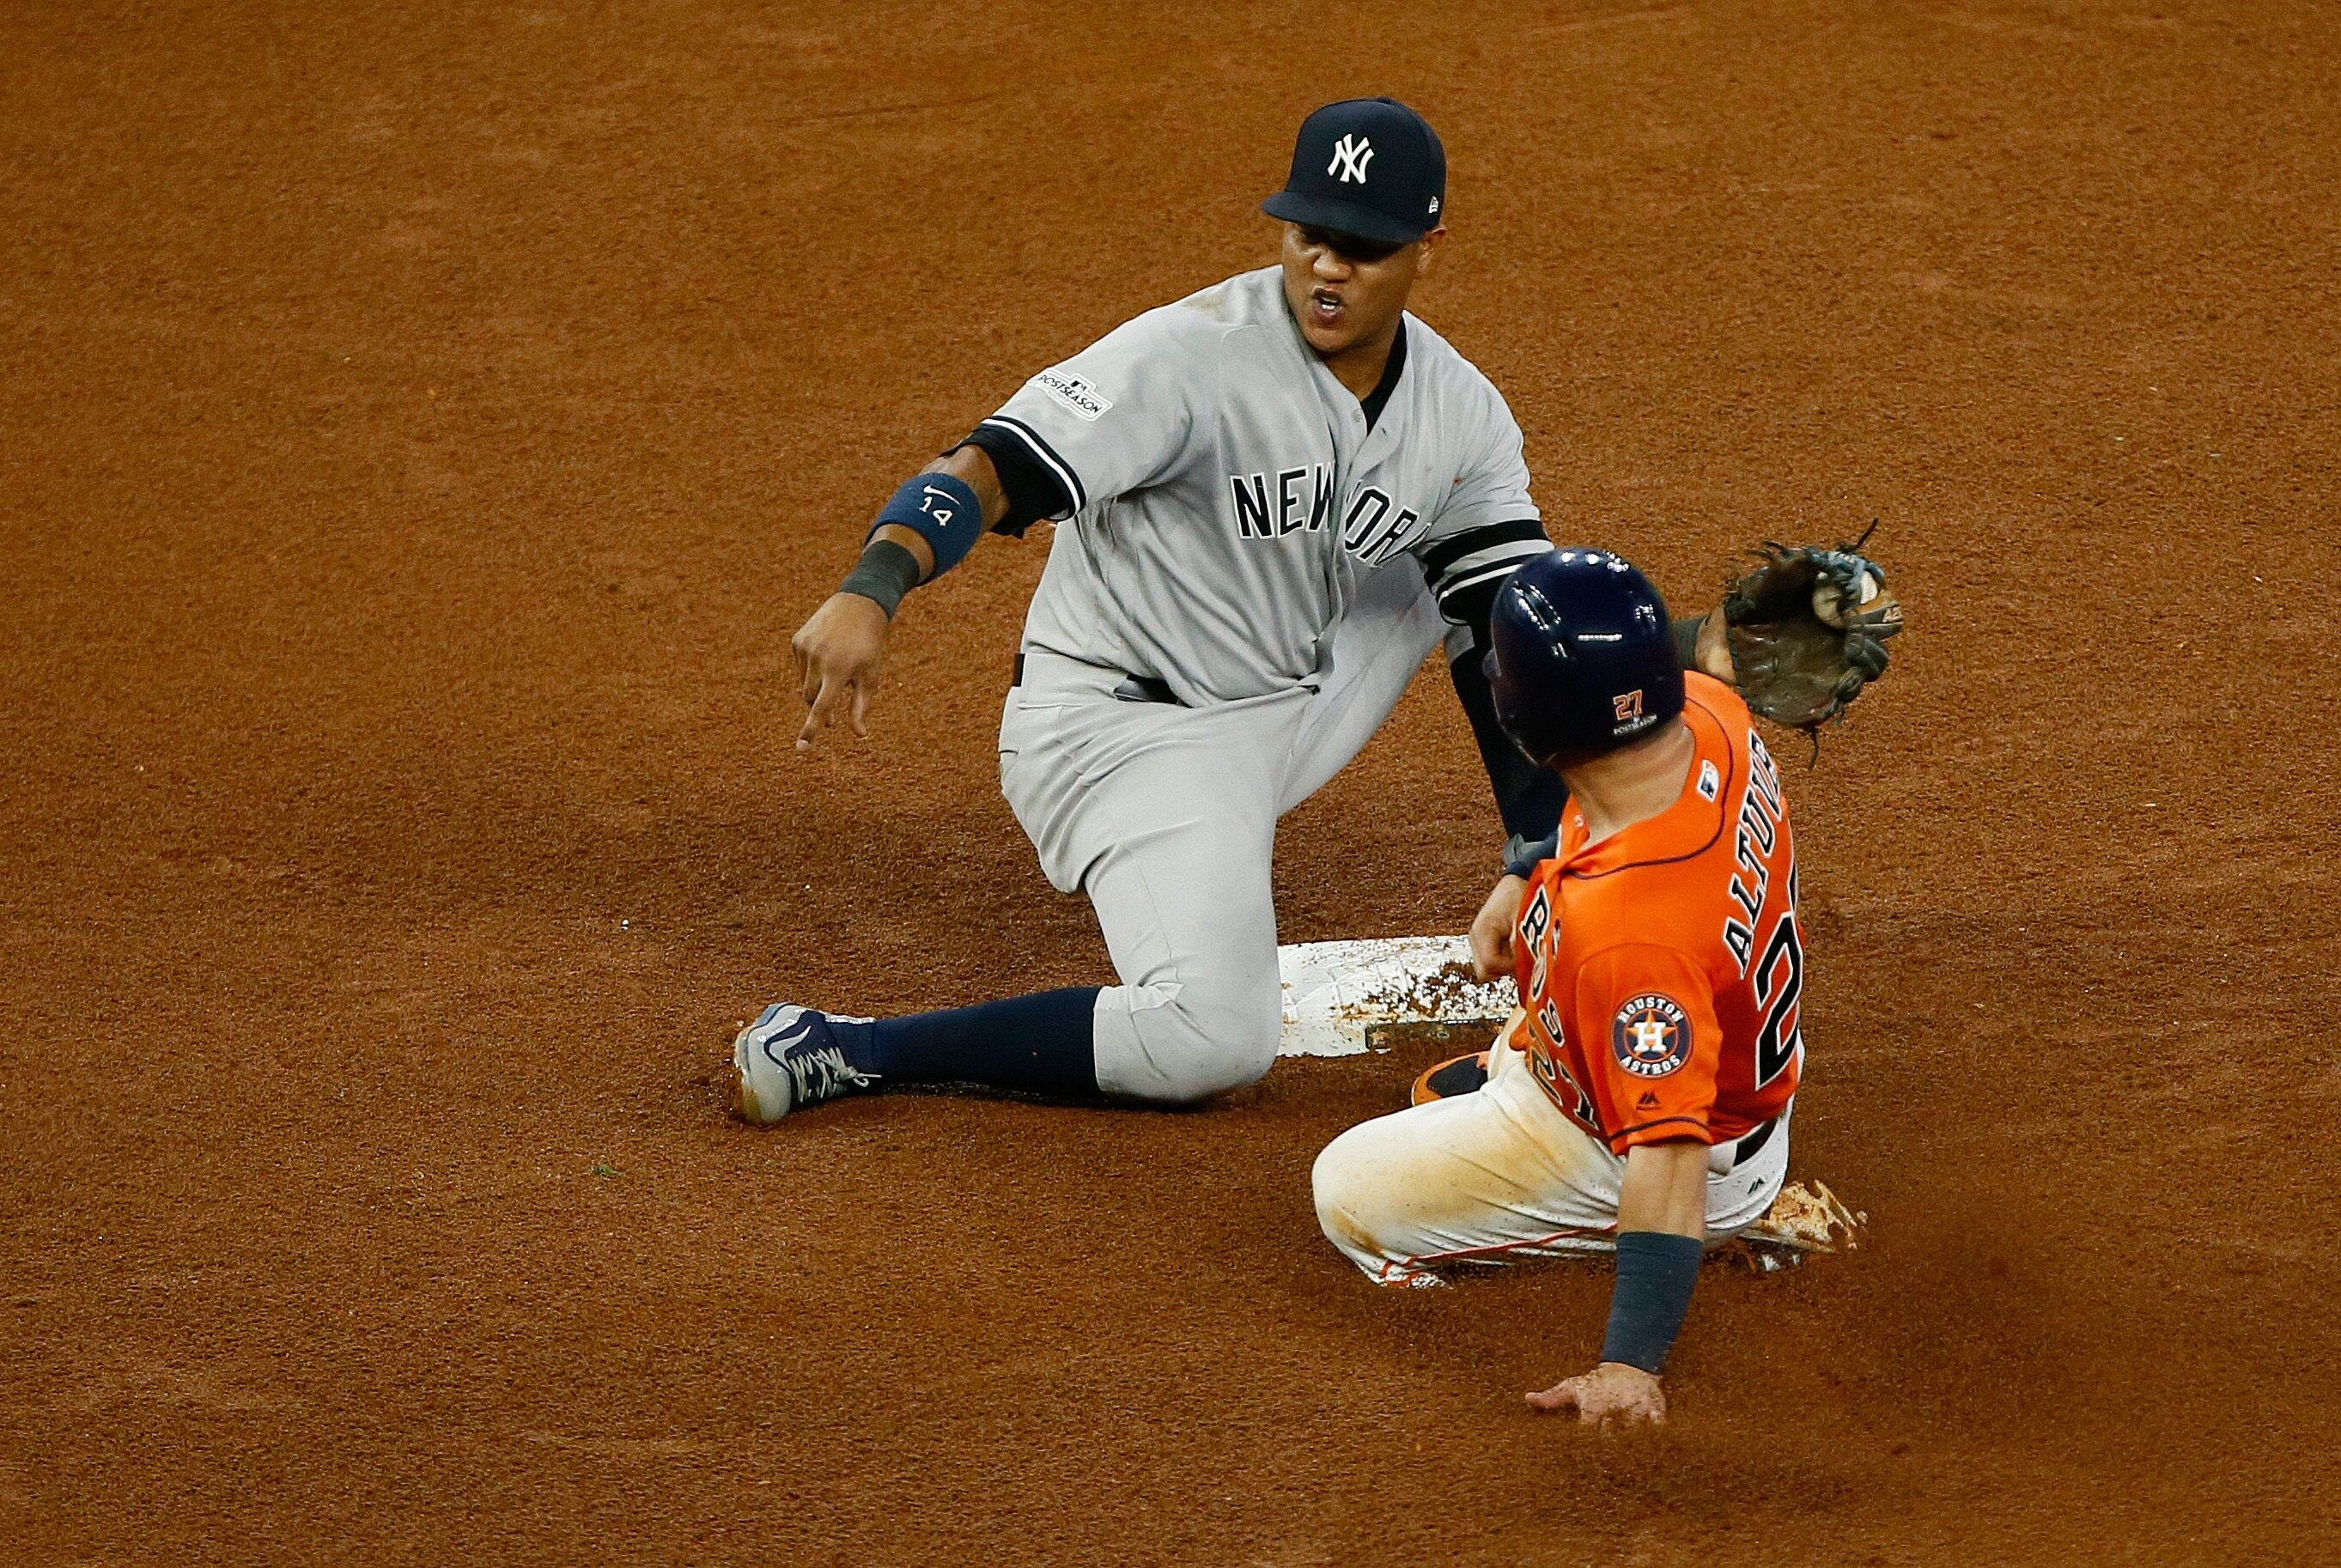 861075808-league-championship-series-new-york-yankees-v-houston-astros-game-one.jpg